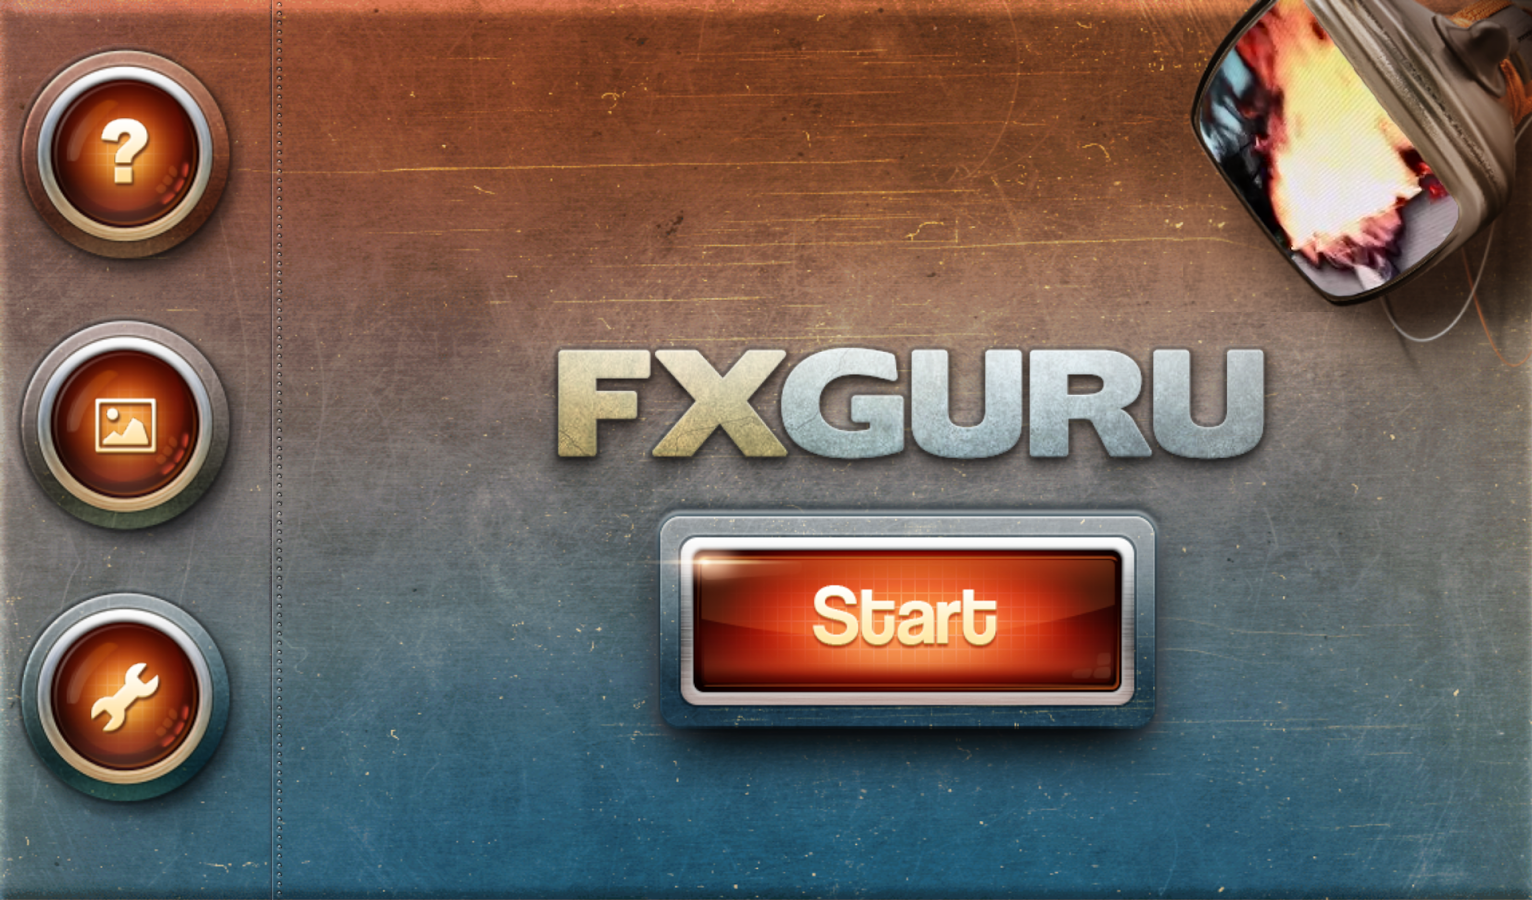 FxGuru: Movie FX Director APK 1.4.1 (Android 2.2+)